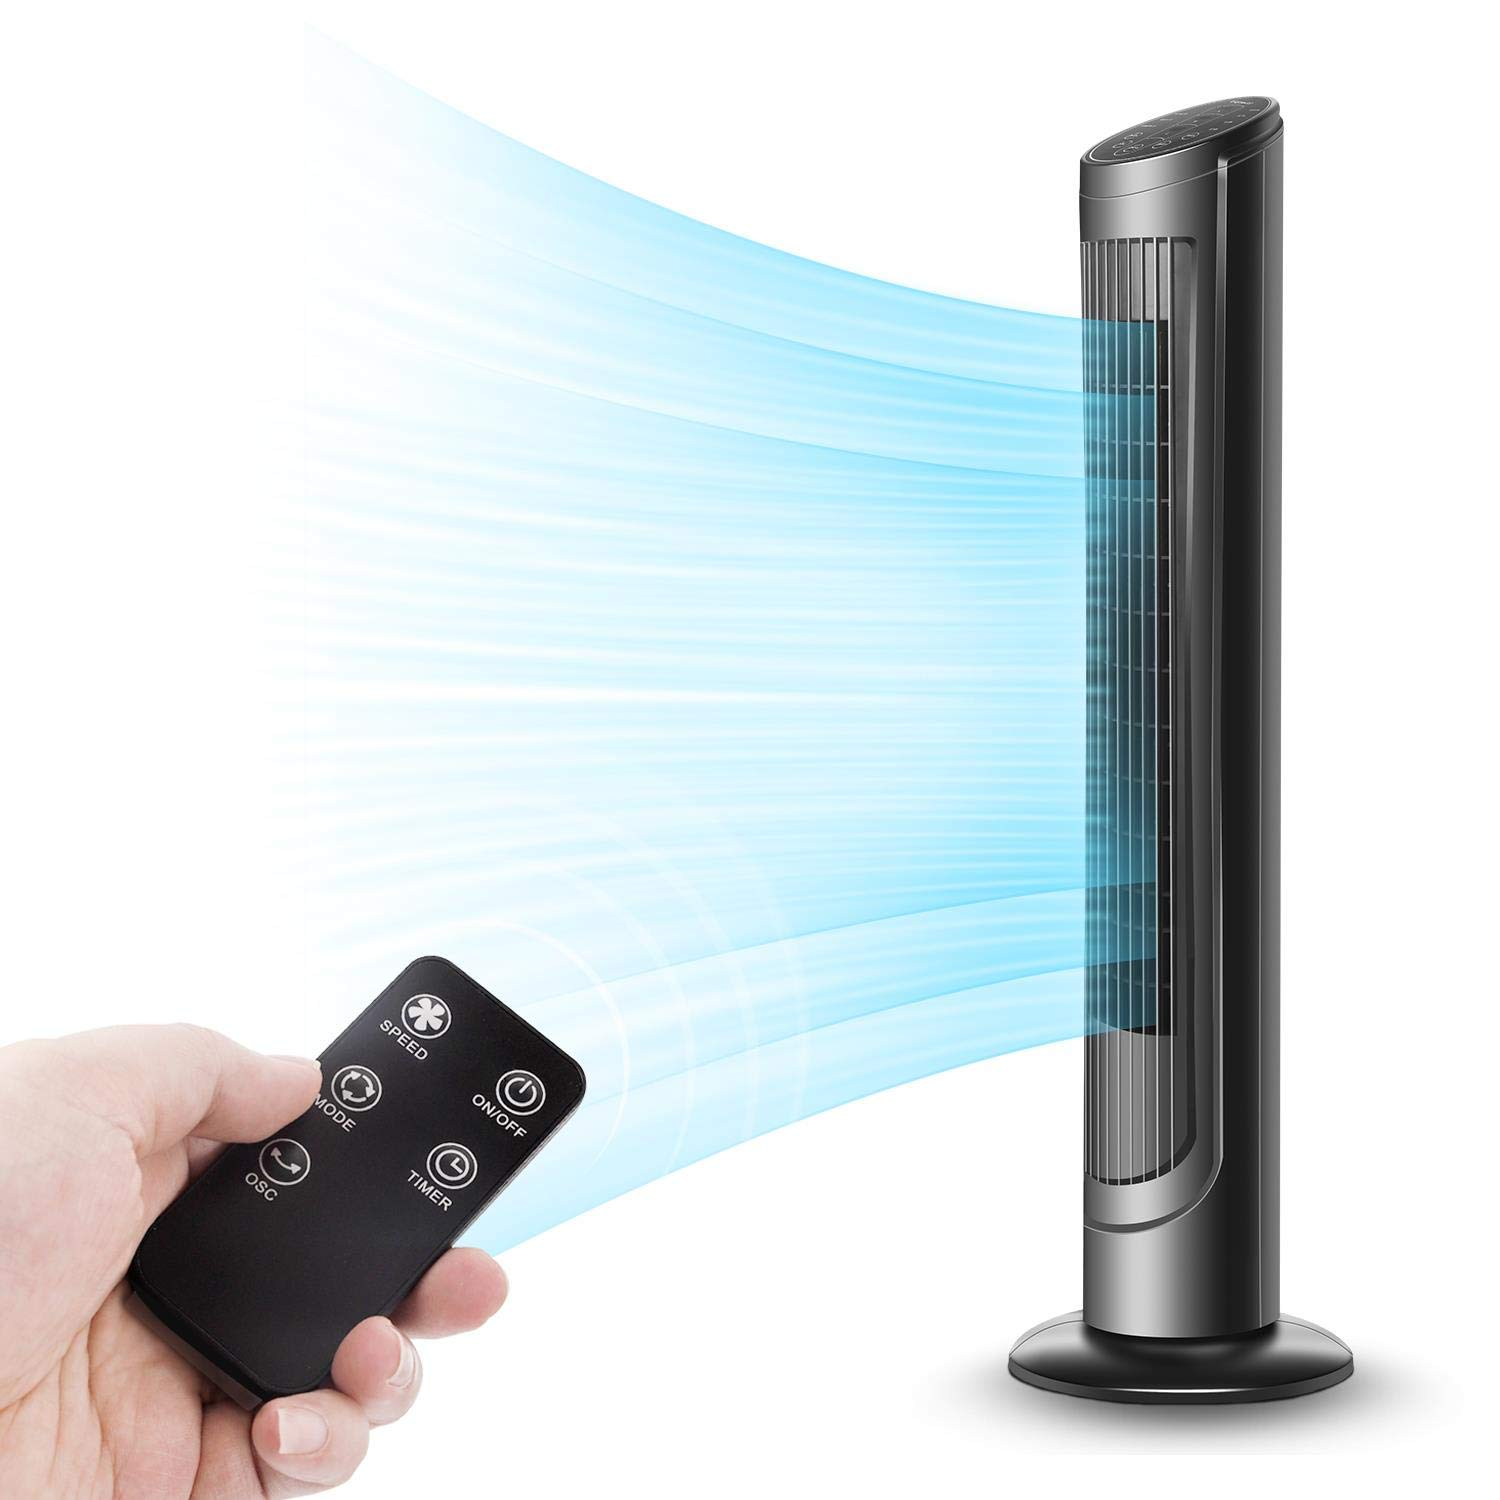 Aigostar Windy, 40'' Oscillating Tower Fan, Bladeless Fans with Remote Control and LCD Display, Standing Cooler Fan, 3 Wind Modes and Speeds, 7.5H Timer for Home Office, Black by Aigostar